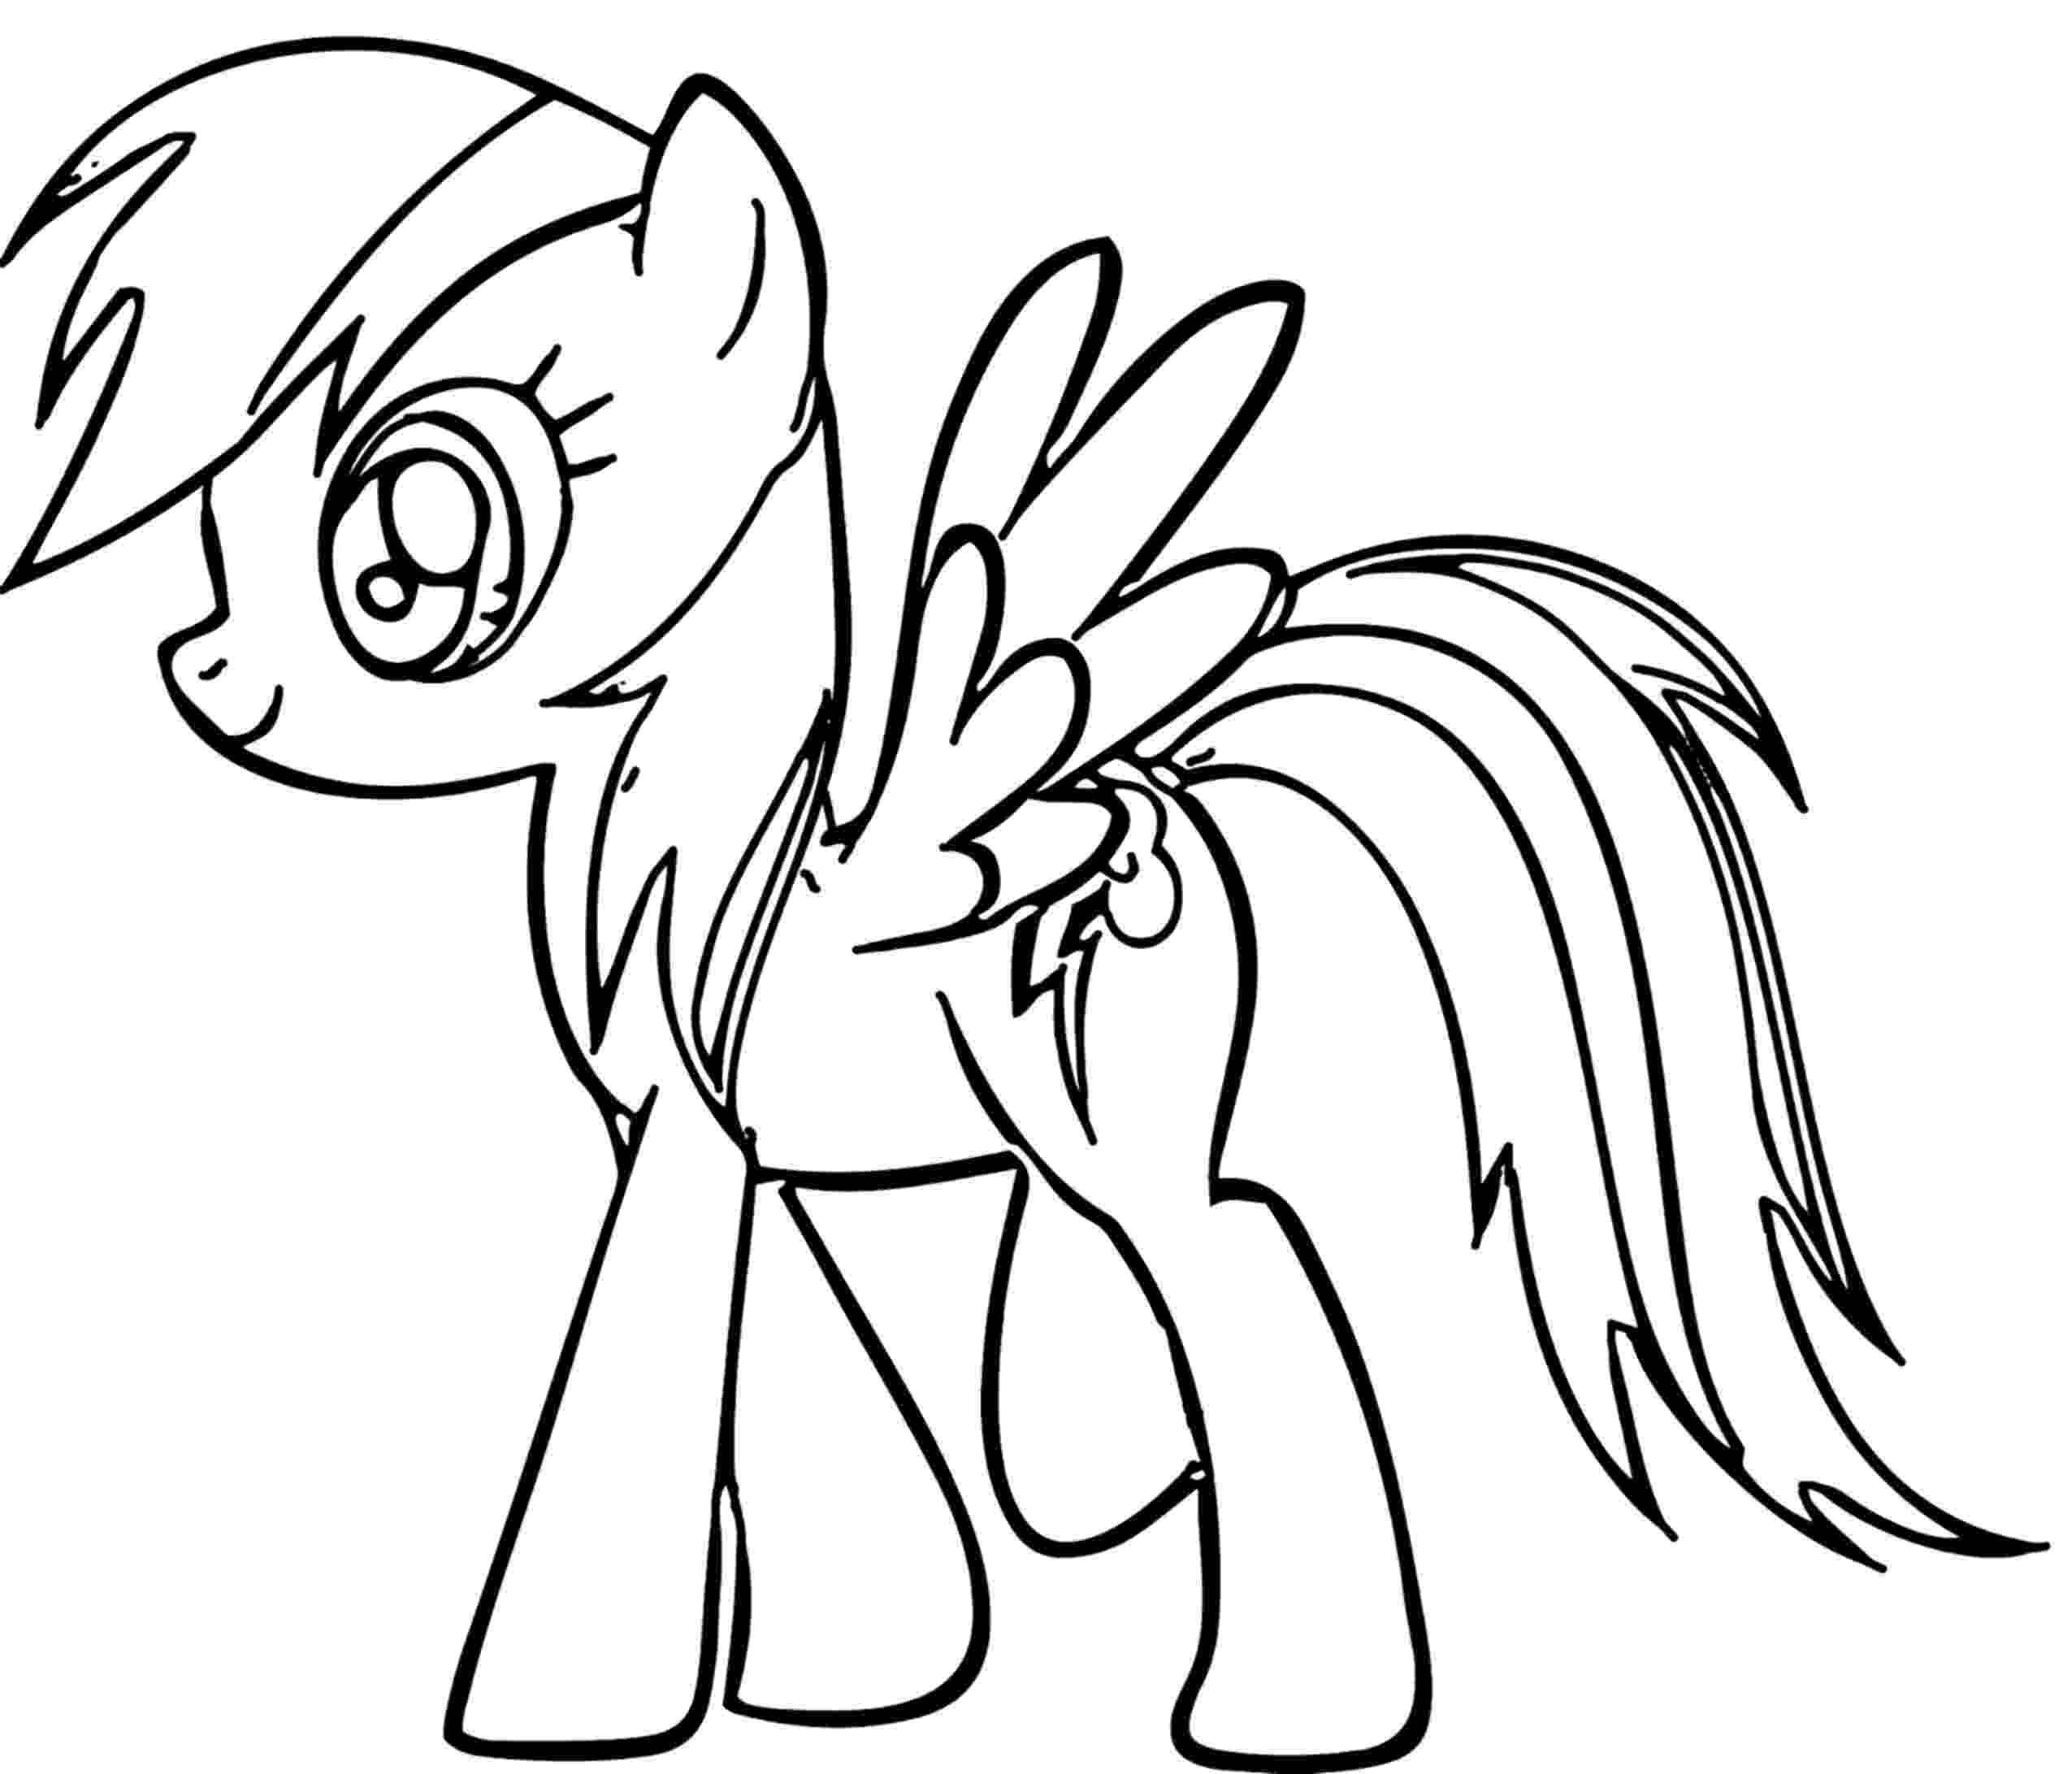 rainbow dash pictures to color rainbow dash coloring pages best coloring pages for kids to color pictures dash rainbow